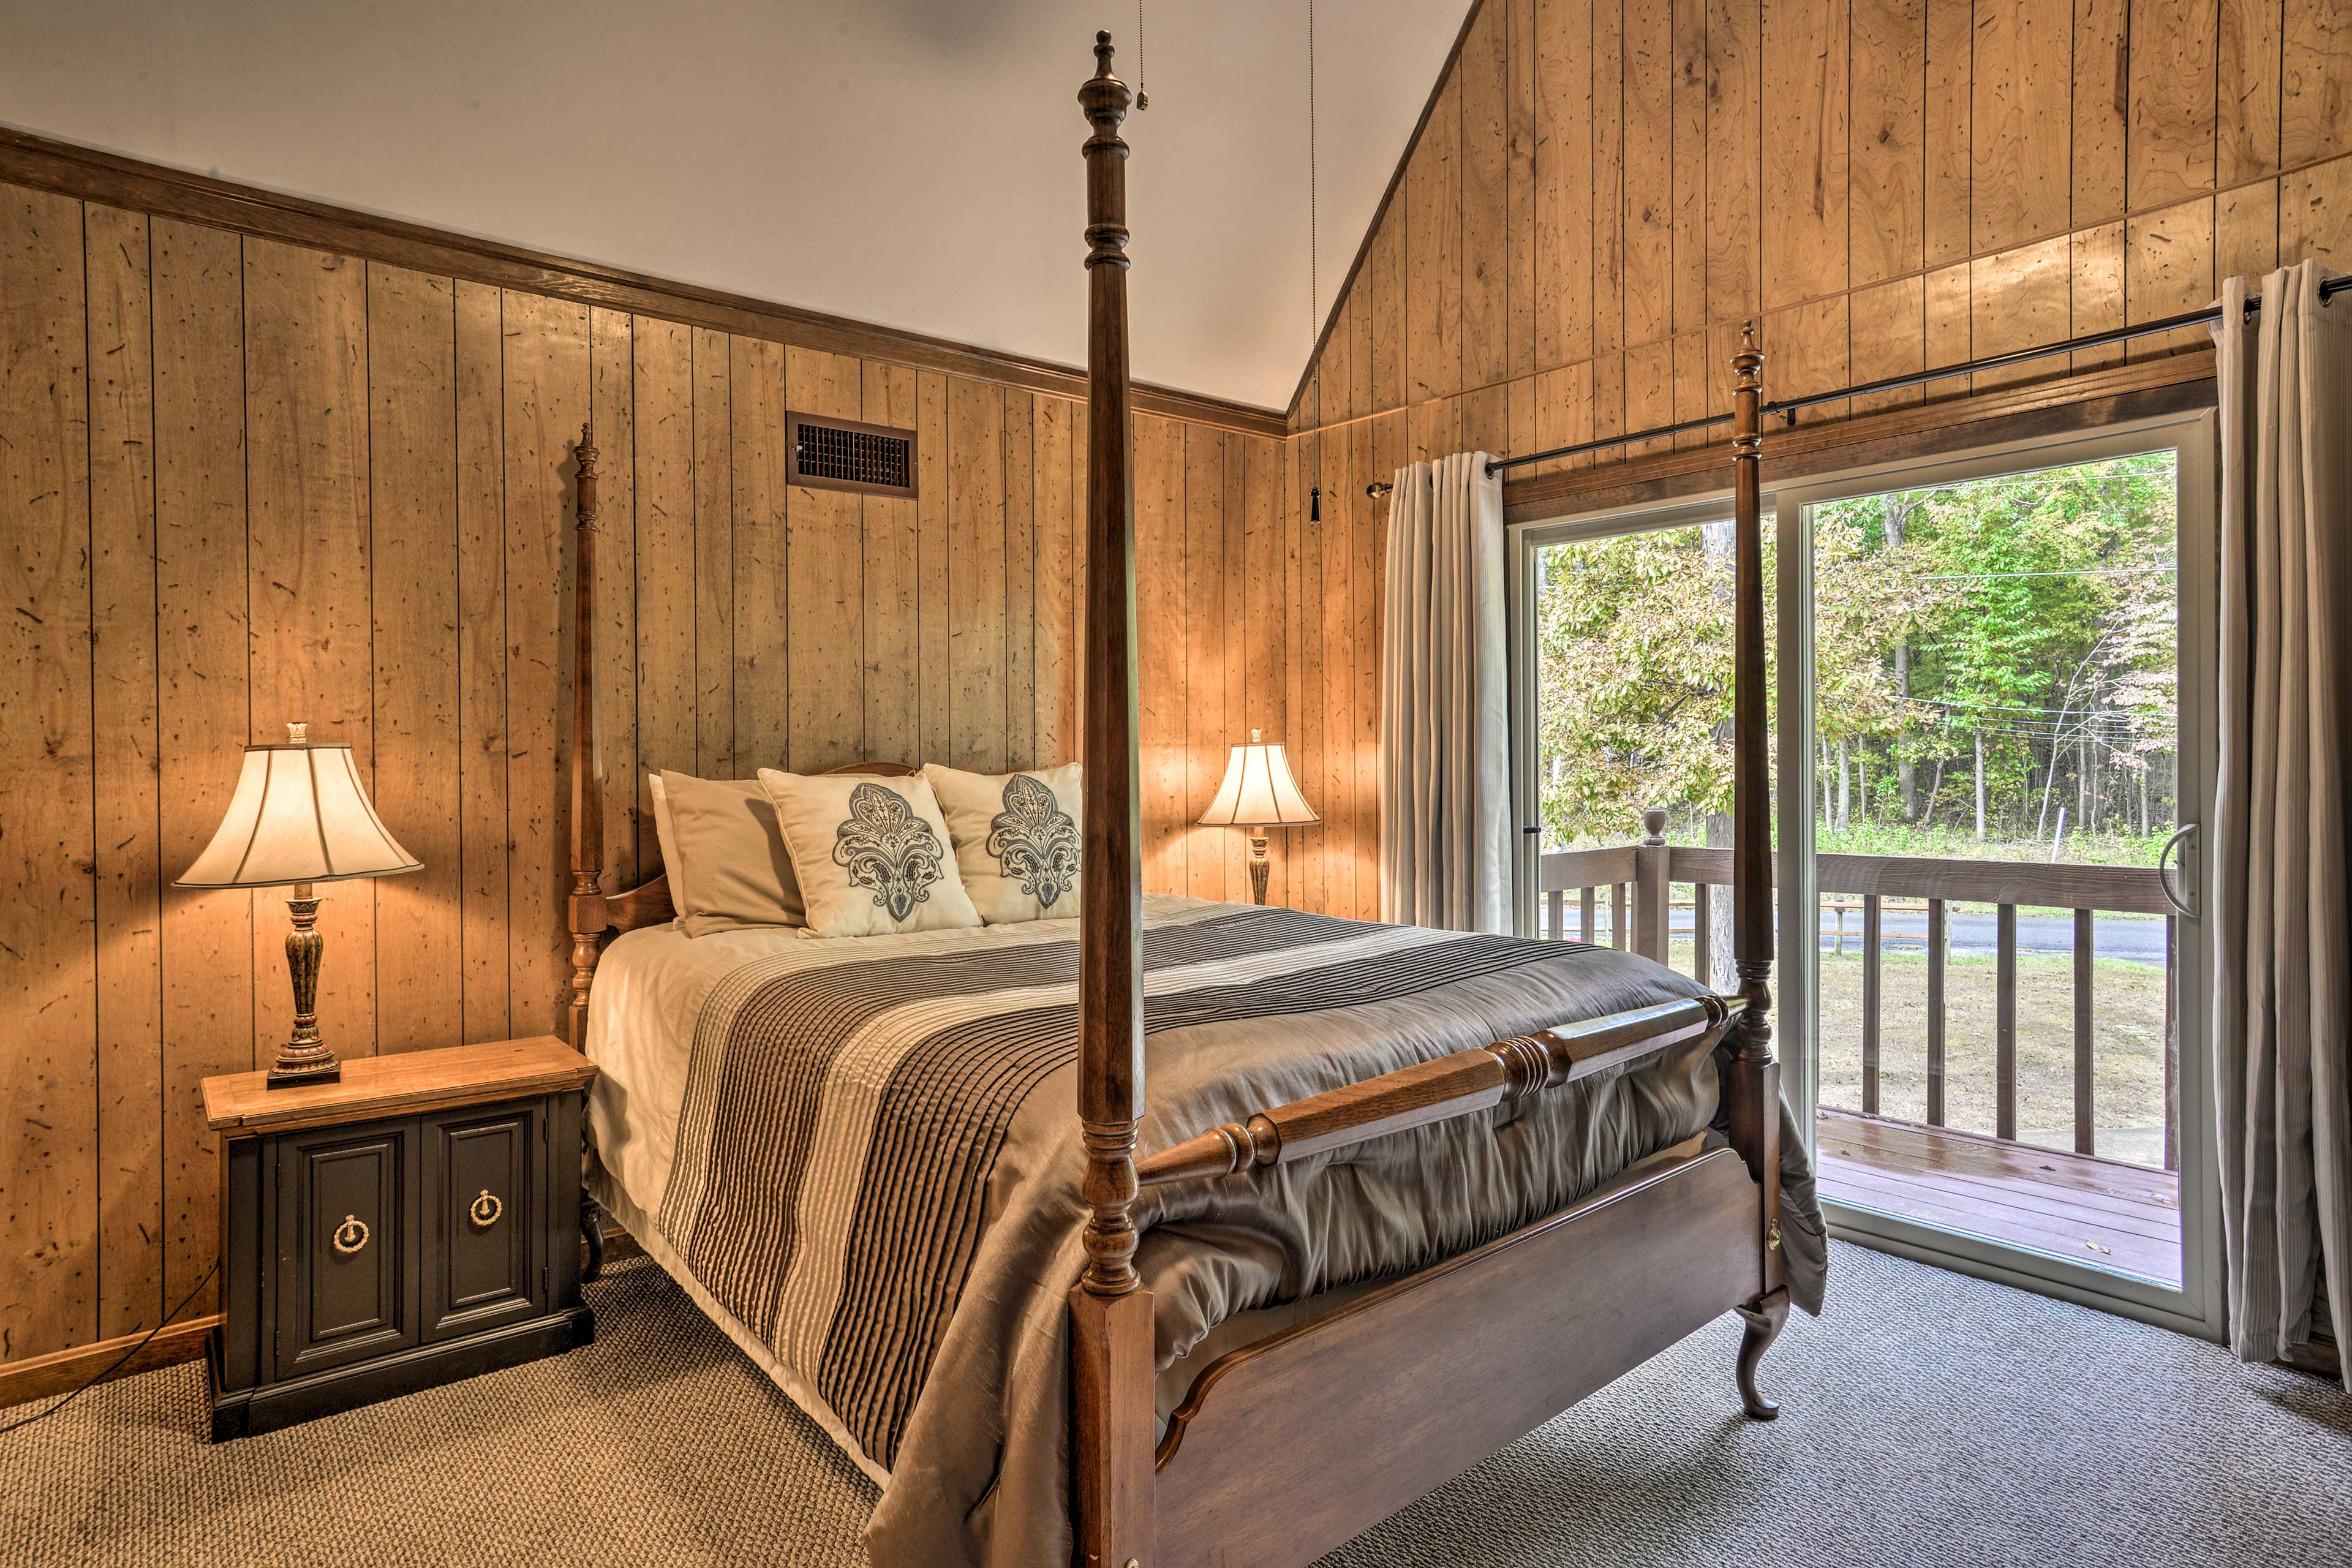 The master bedroom features a cozy queen bed and deck access.